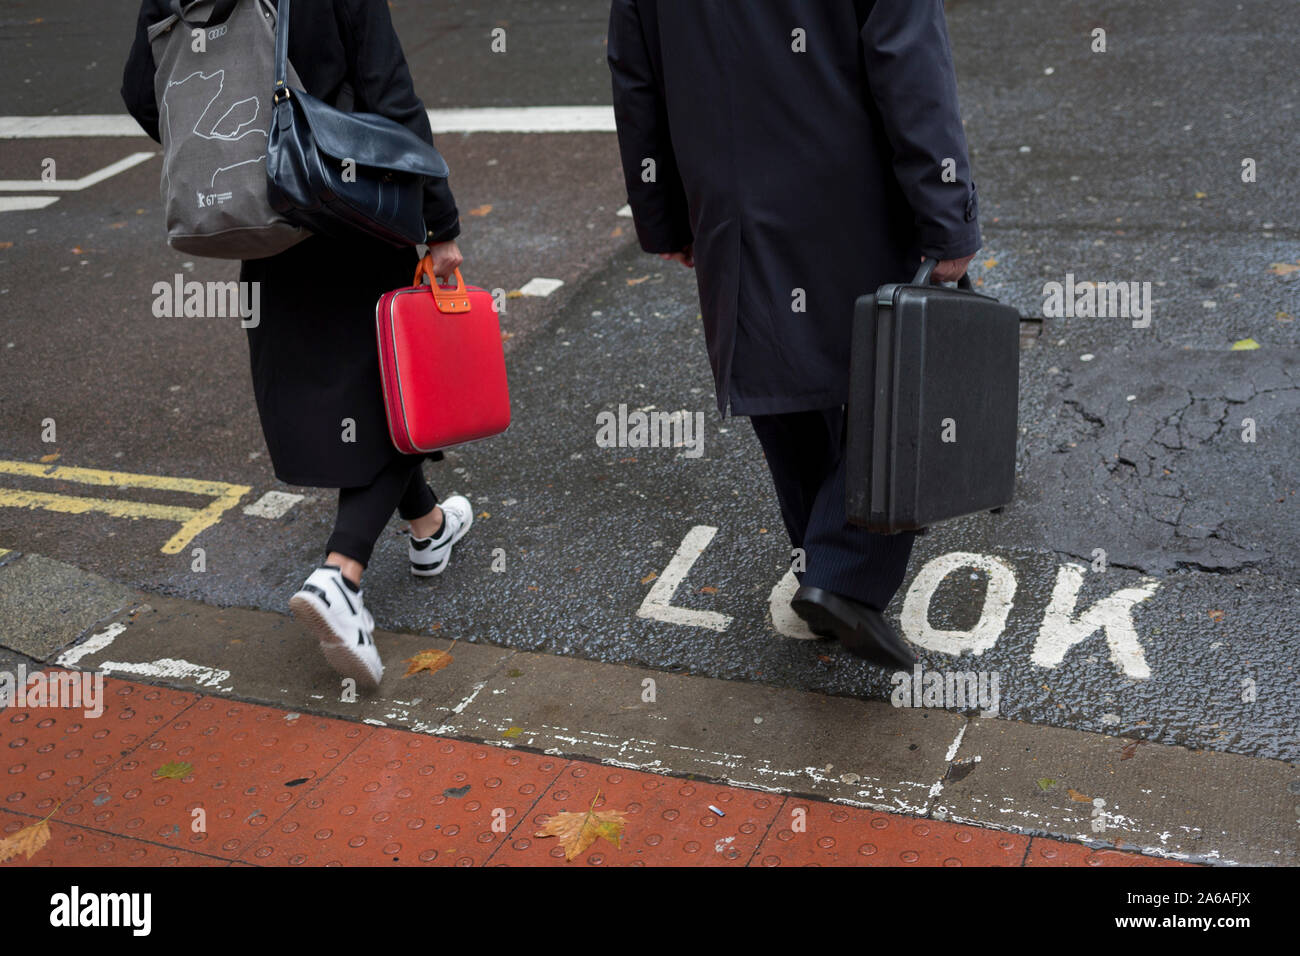 After heavy rainfall, Londoners and visitors cross Kingsway, on 24th October 2019, in Westminster, London, England. Stock Photo